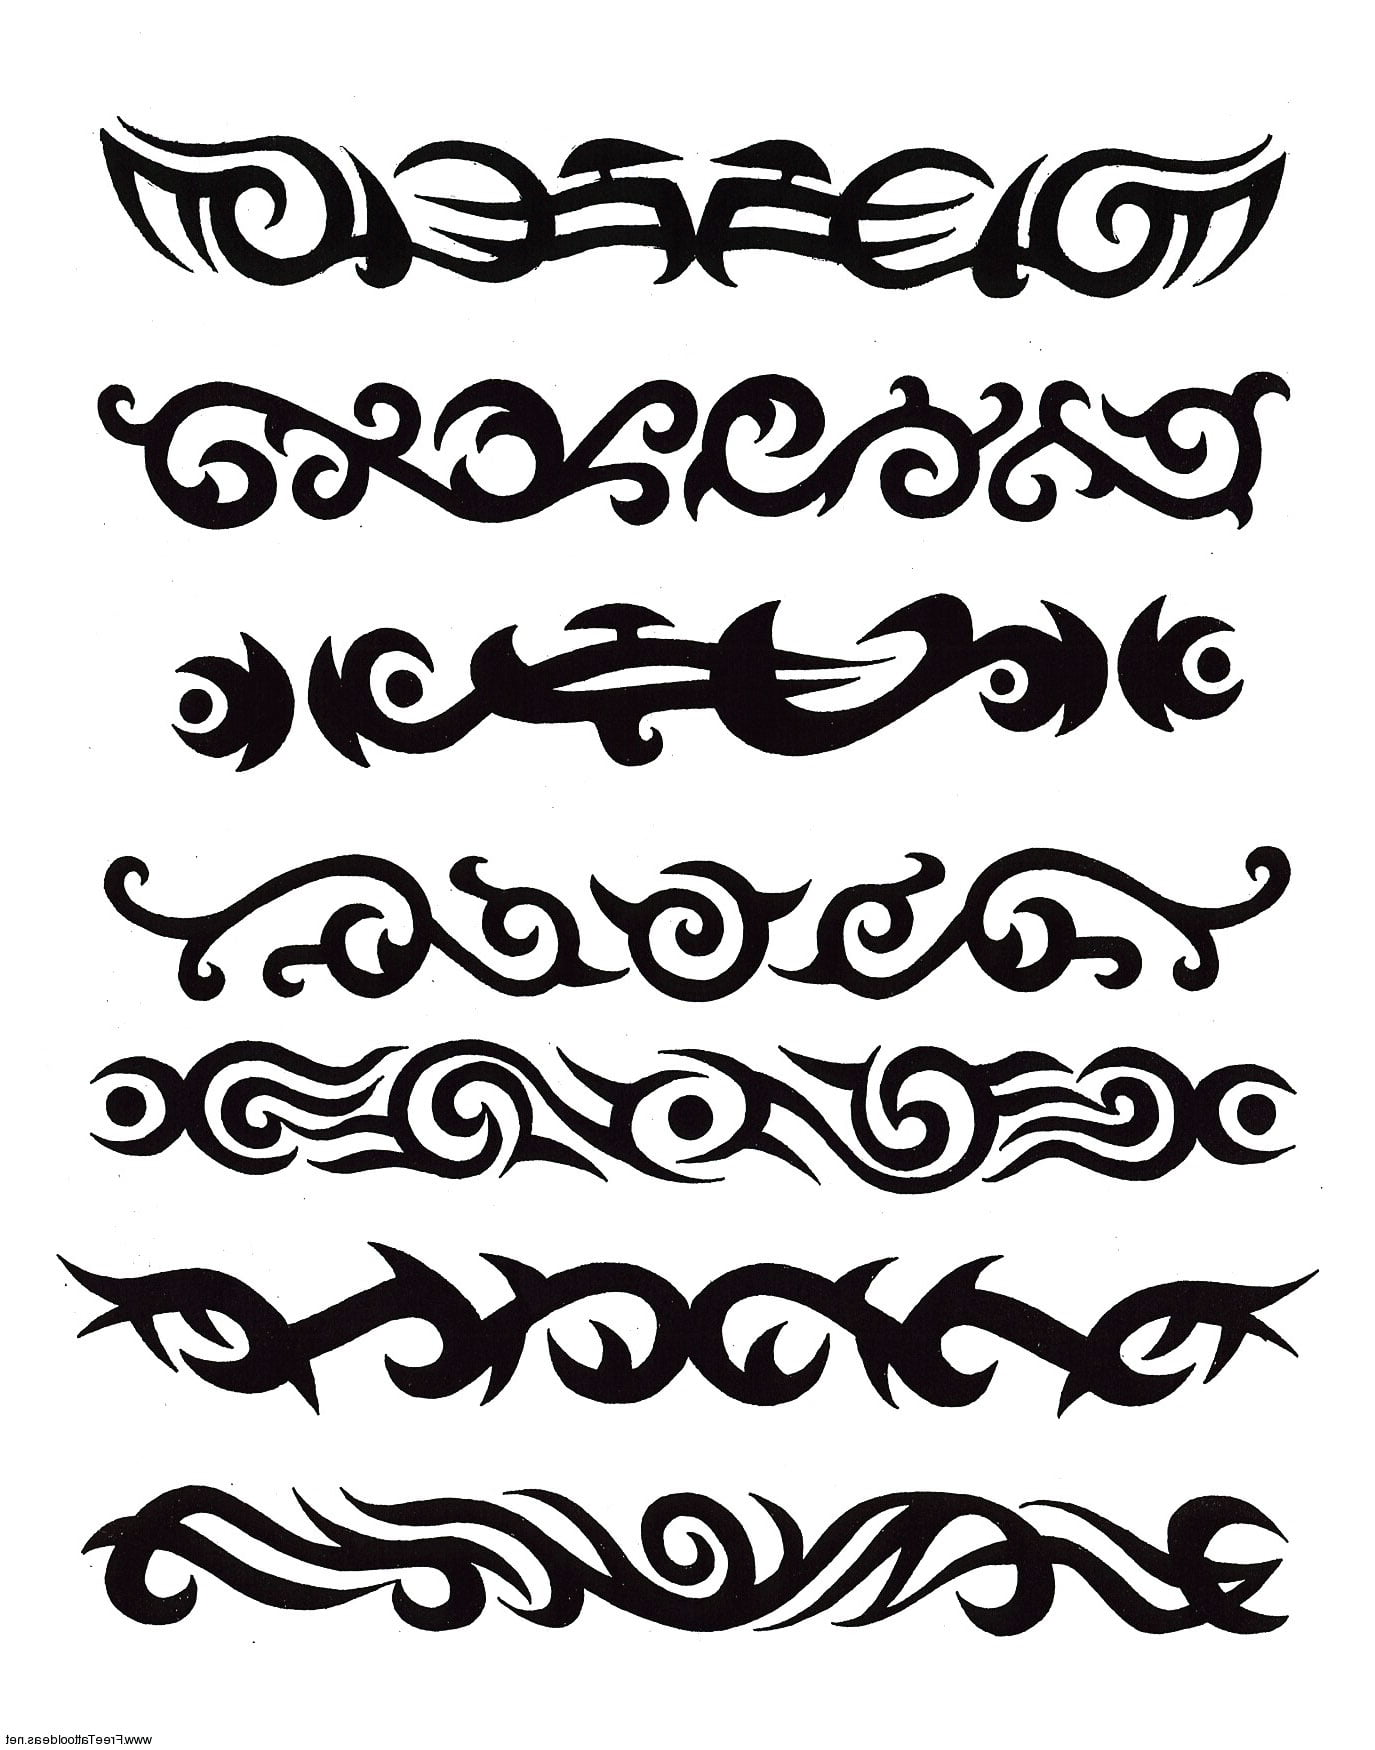 free tribal tattoo designs for arms cool tattoos bonbaden. Black Bedroom Furniture Sets. Home Design Ideas